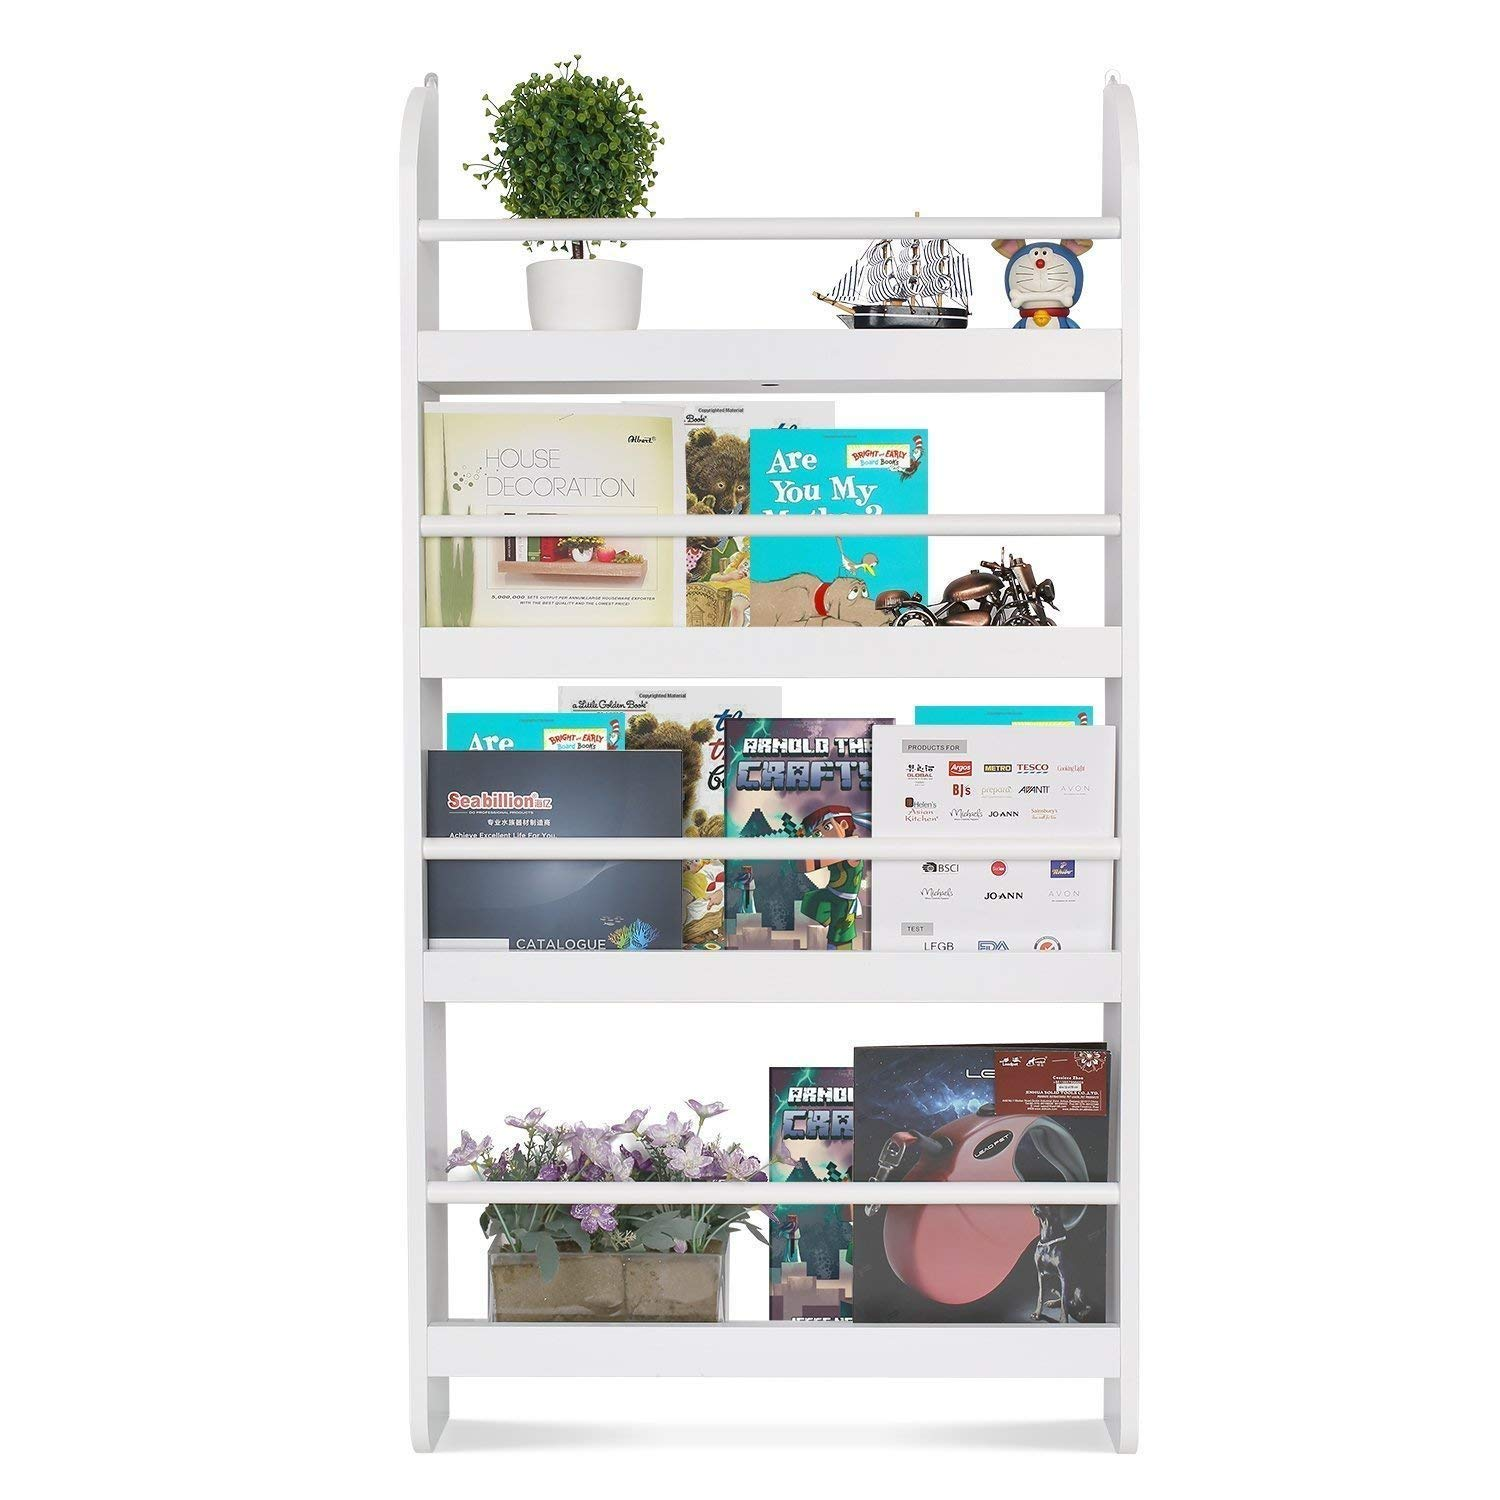 Homfa Kids Bookshelf, 4-Tier Children's Bookcase Rack Wall Mountable Floating Display Storage Shelves, Organizer Holder Stand for Books Toys in Study Living Room Bedroom, 23.2L x 4.7W x 44.5H, White by Homfa